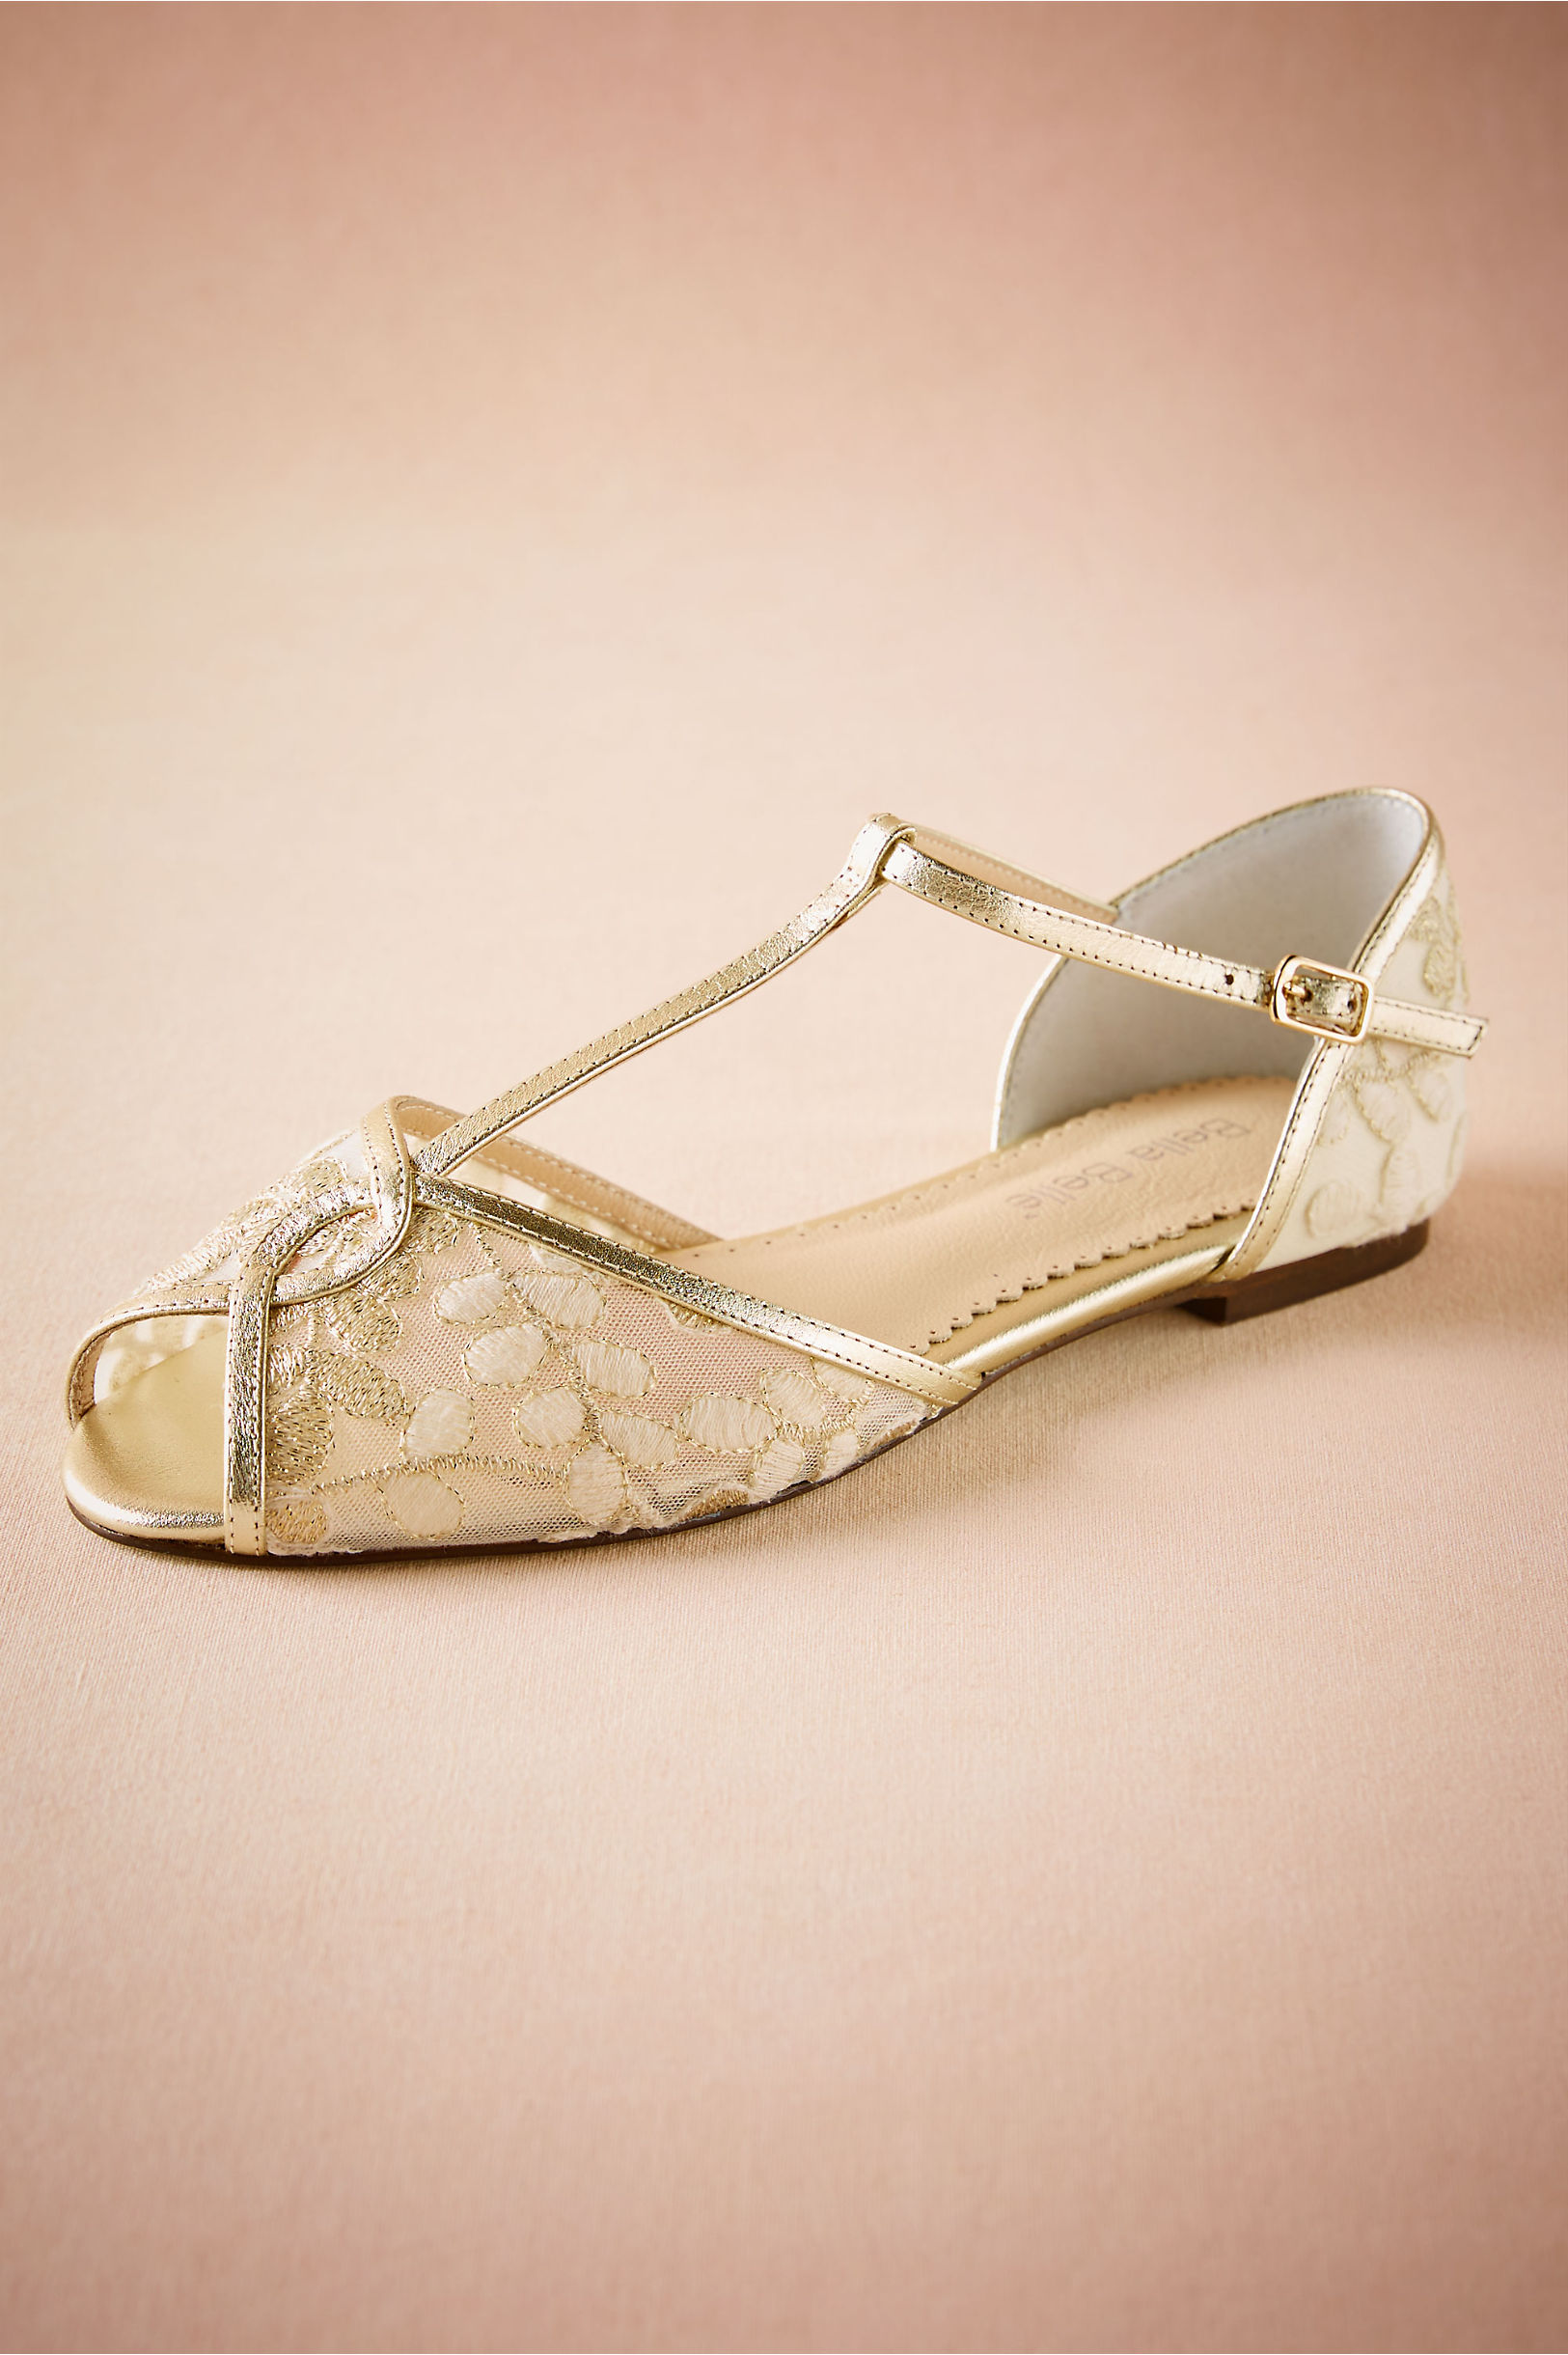 1920s Shoes UK – T-Bar, Oxfords, Flats Maisie Embroidered T-Strap Flats $190.00 AT vintagedancer.com